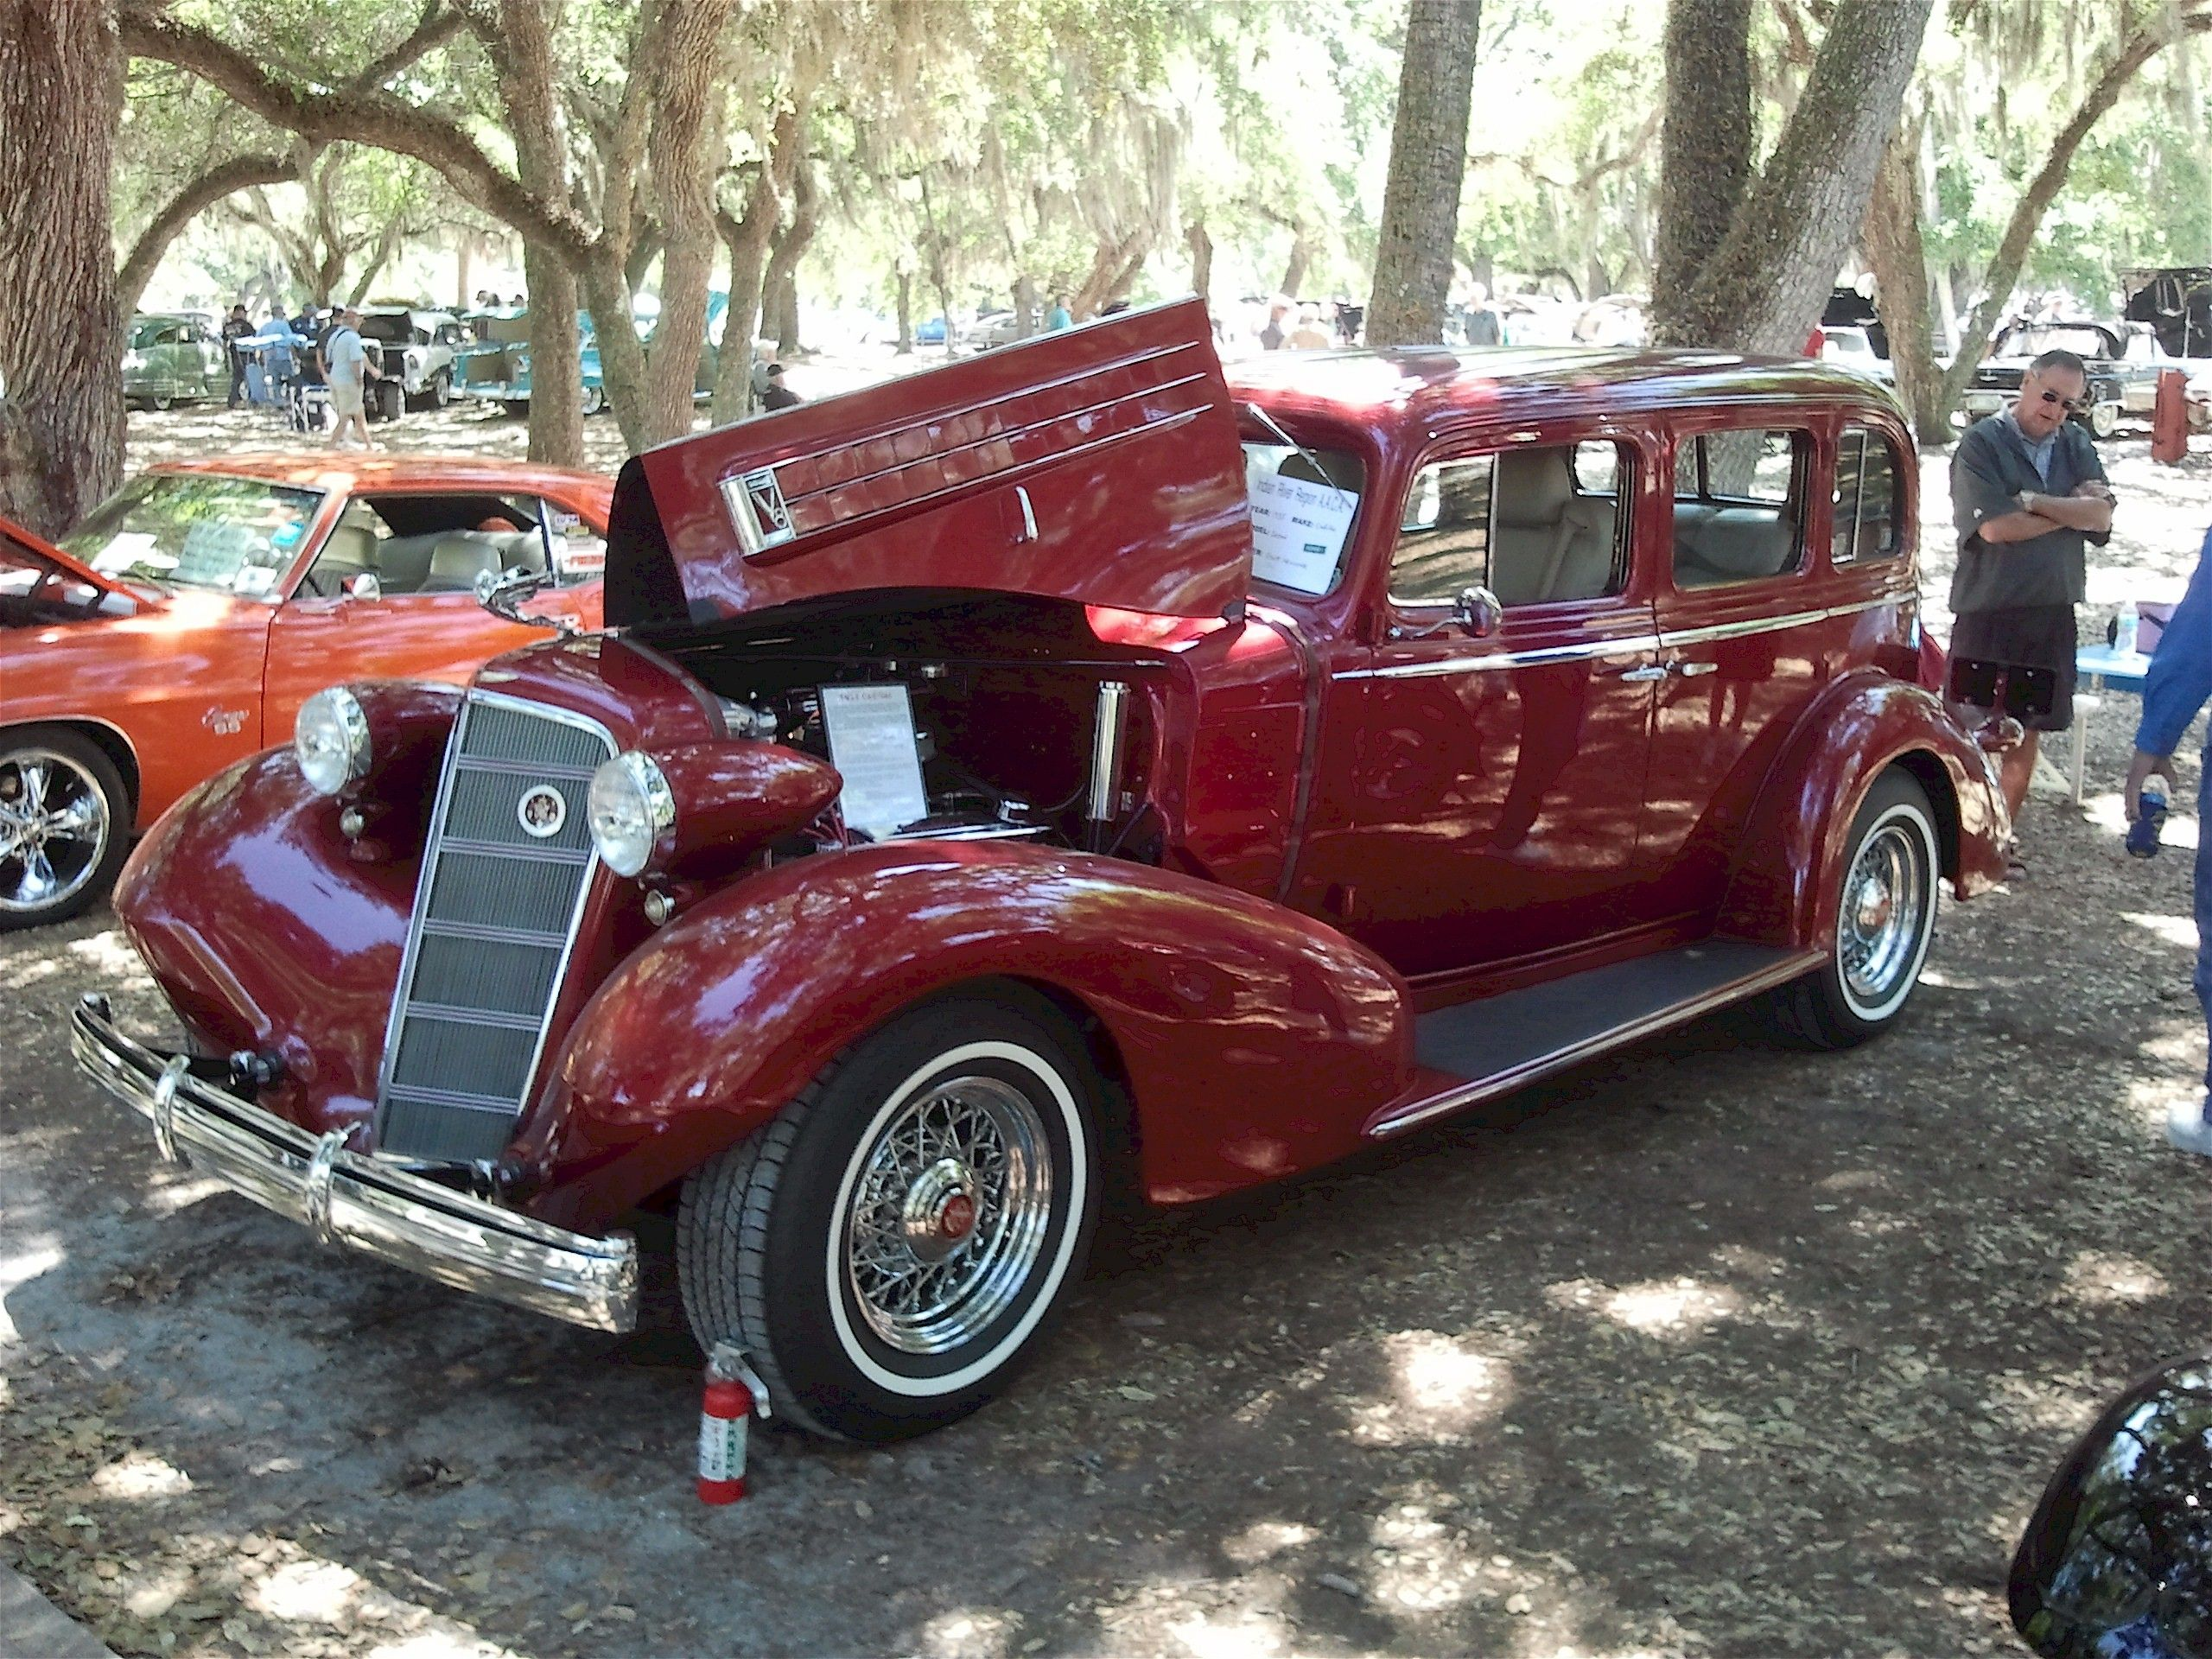 Beautiful Cadillac Vero Beach Car Show Pinterest - Vero beach car show